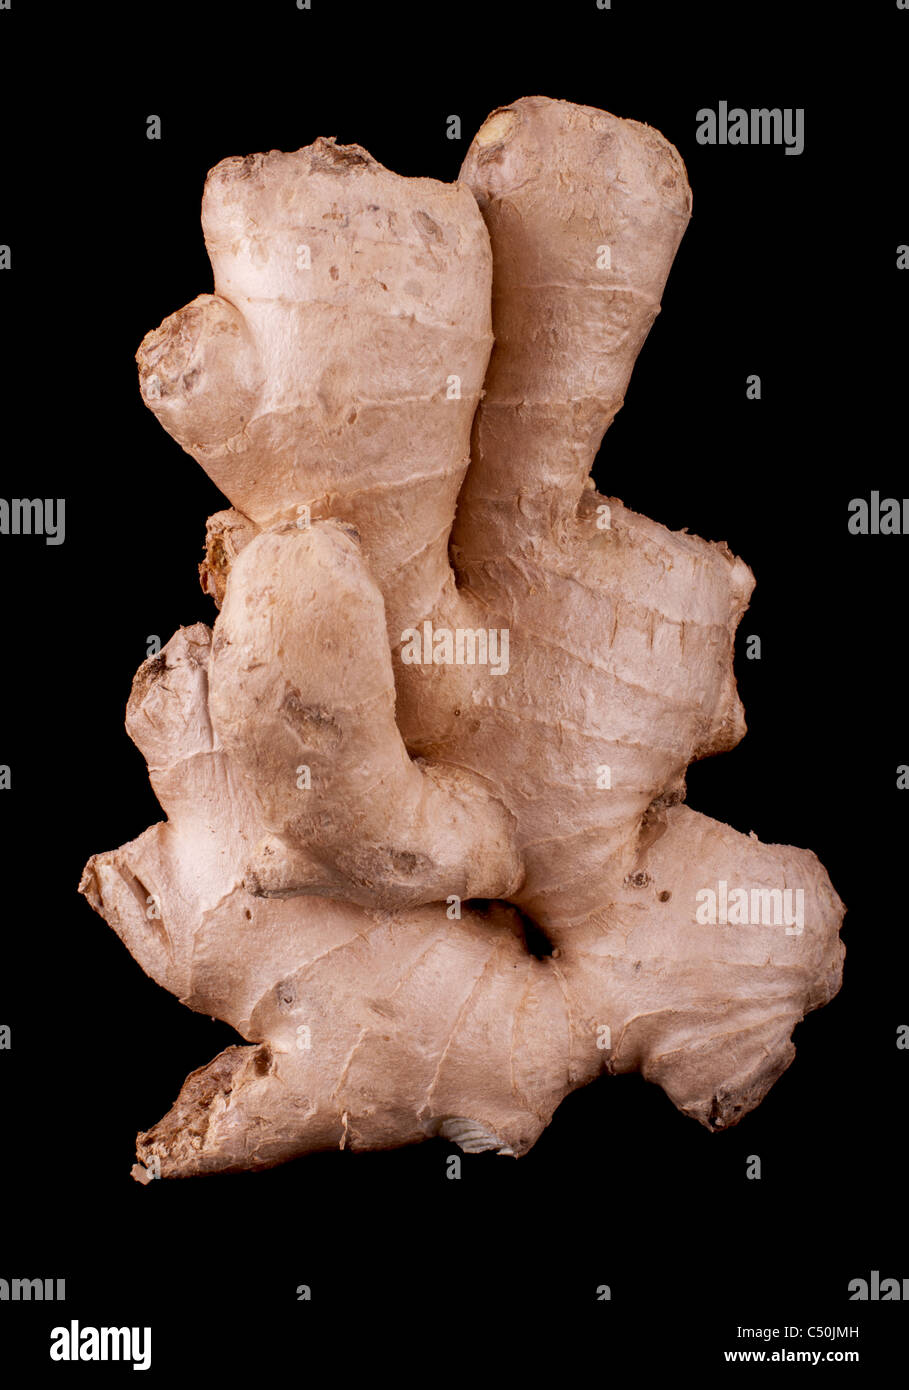 Single ginger isolated on black background - Stock Image